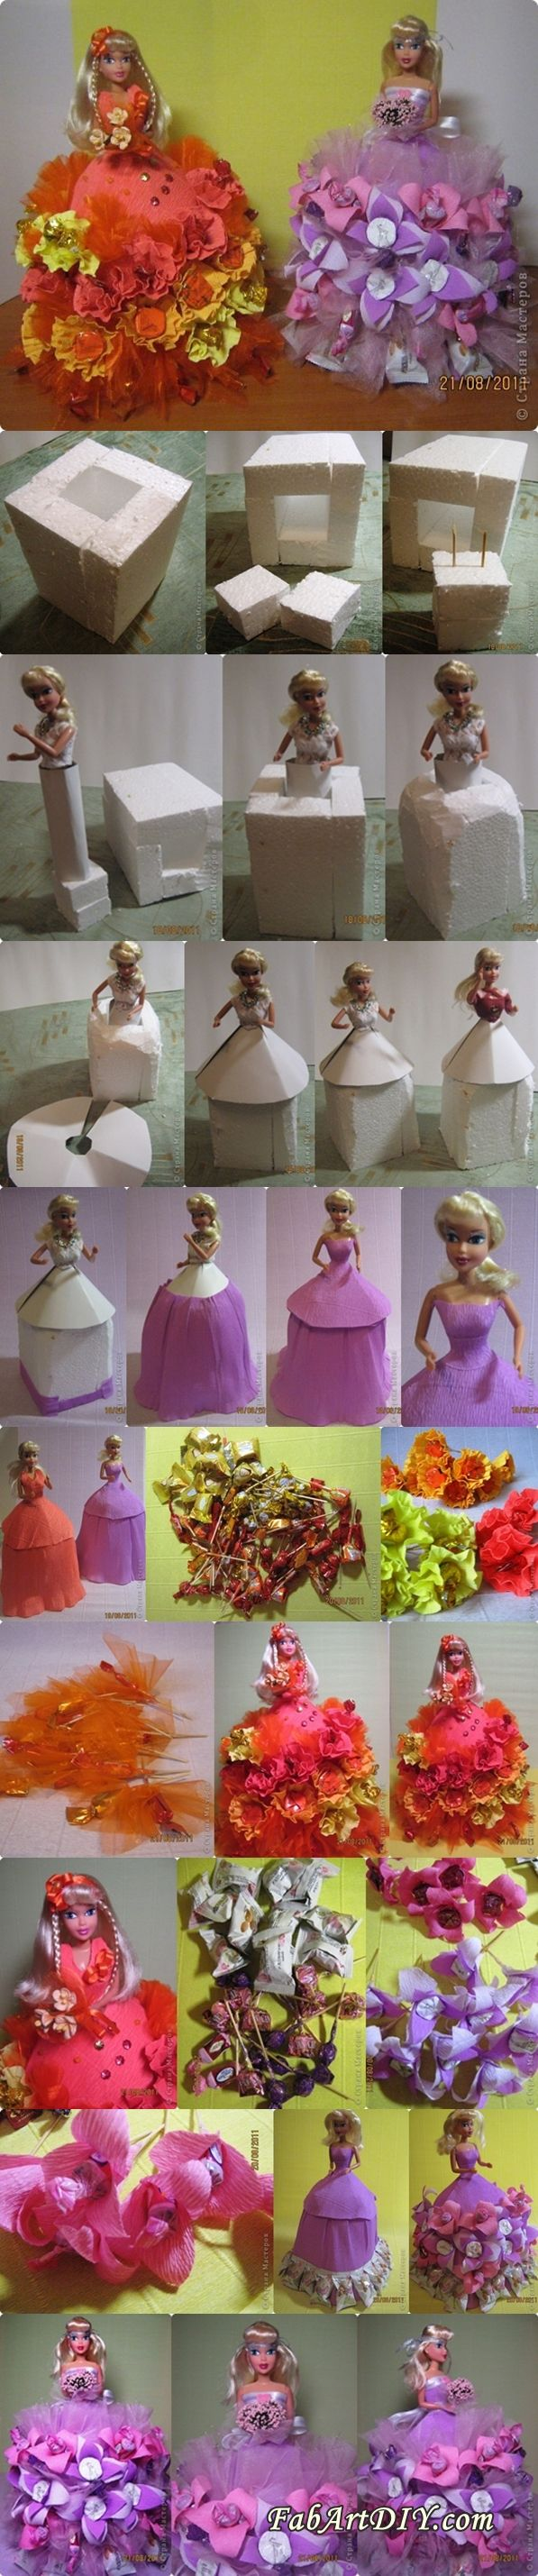 DIY Chocolate Wrapped Flower Barbie Dress | www.FabArtDIY.com LIKE Us on Facebook == https://www.facebook.com/FabArtDIY